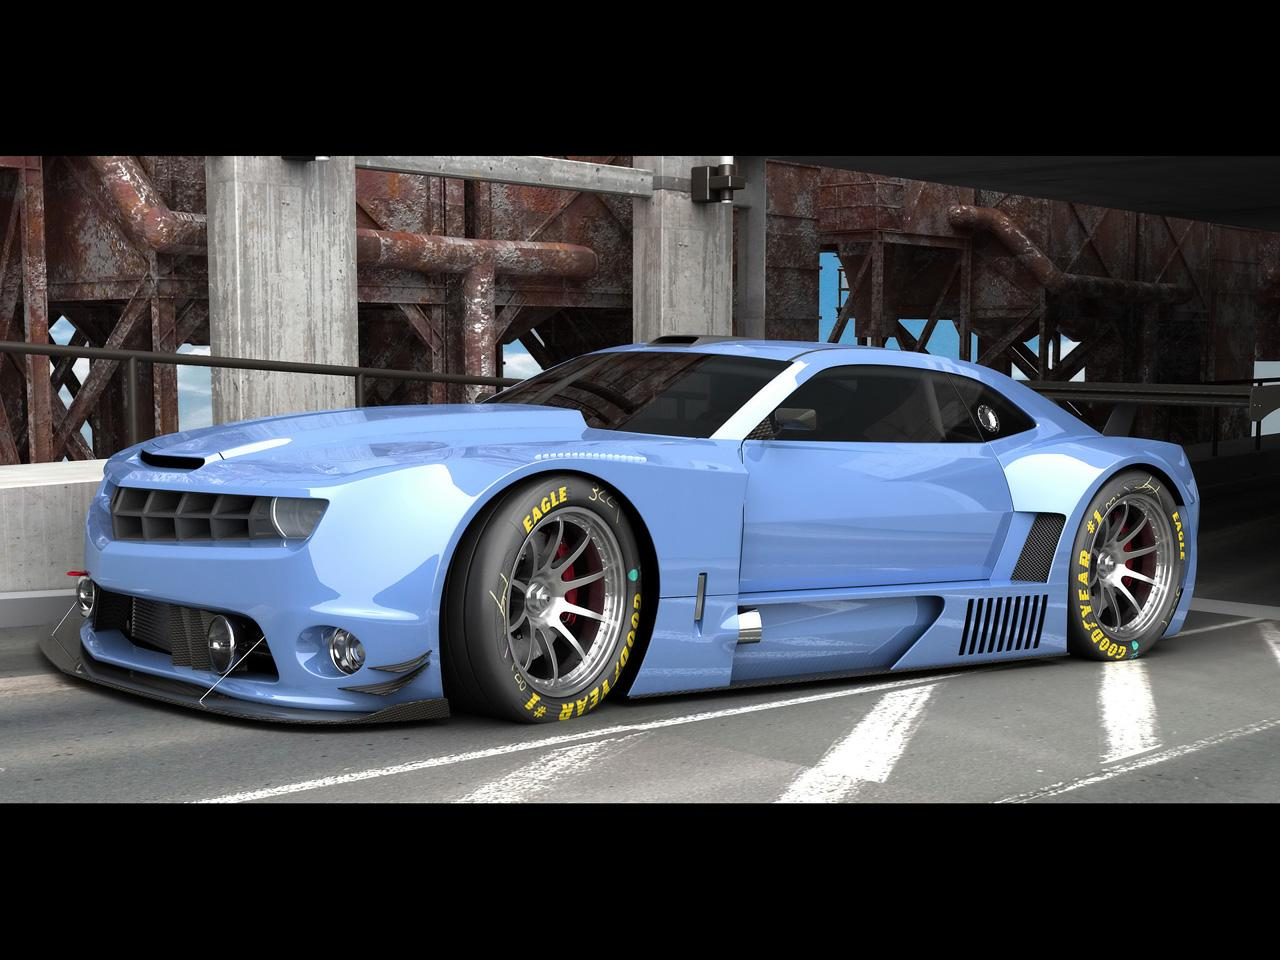 2010 Chevrolet Camaro Alms Style Race Car Wallpapers By